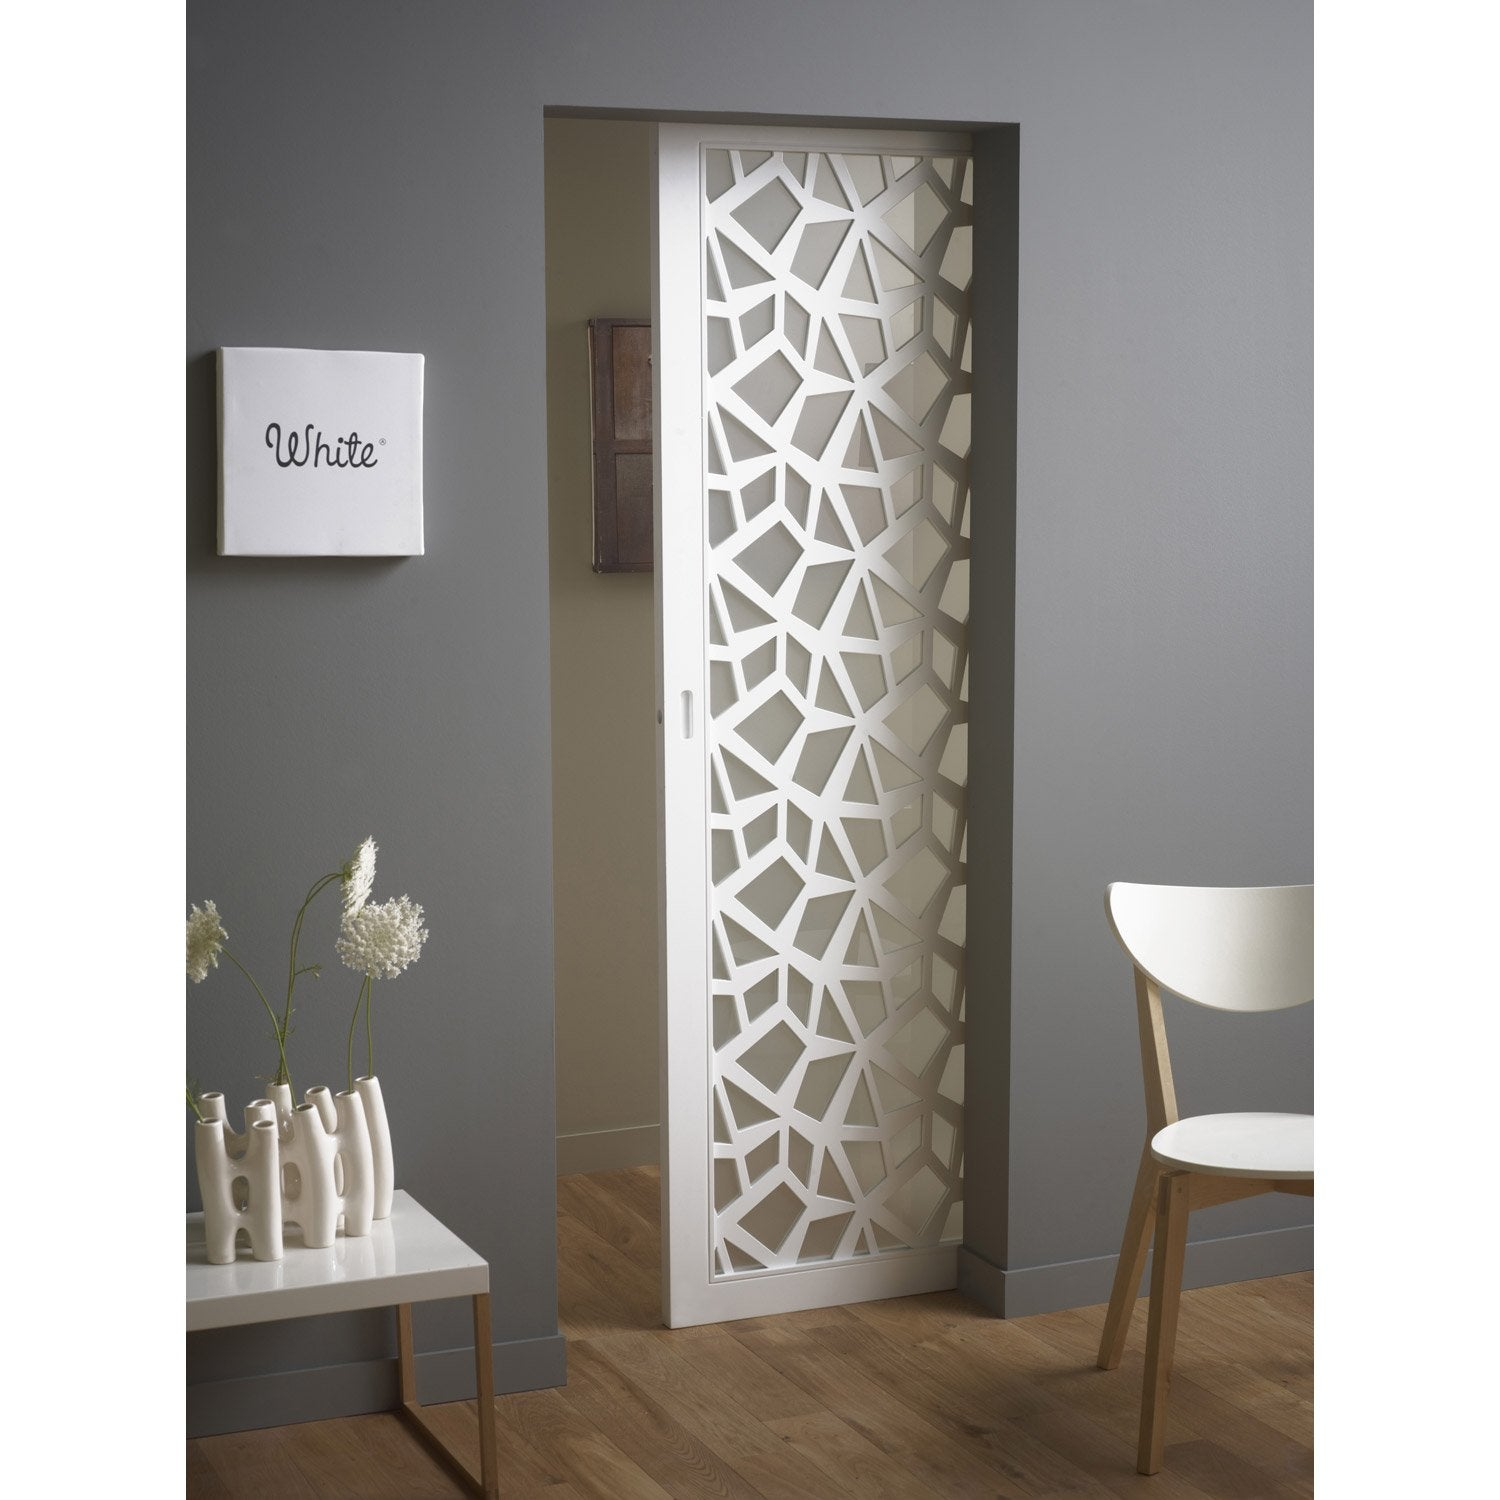 Ensemble porte coulissante crash verre et mdf laqu for Porte coulissante interieur leroy merlin